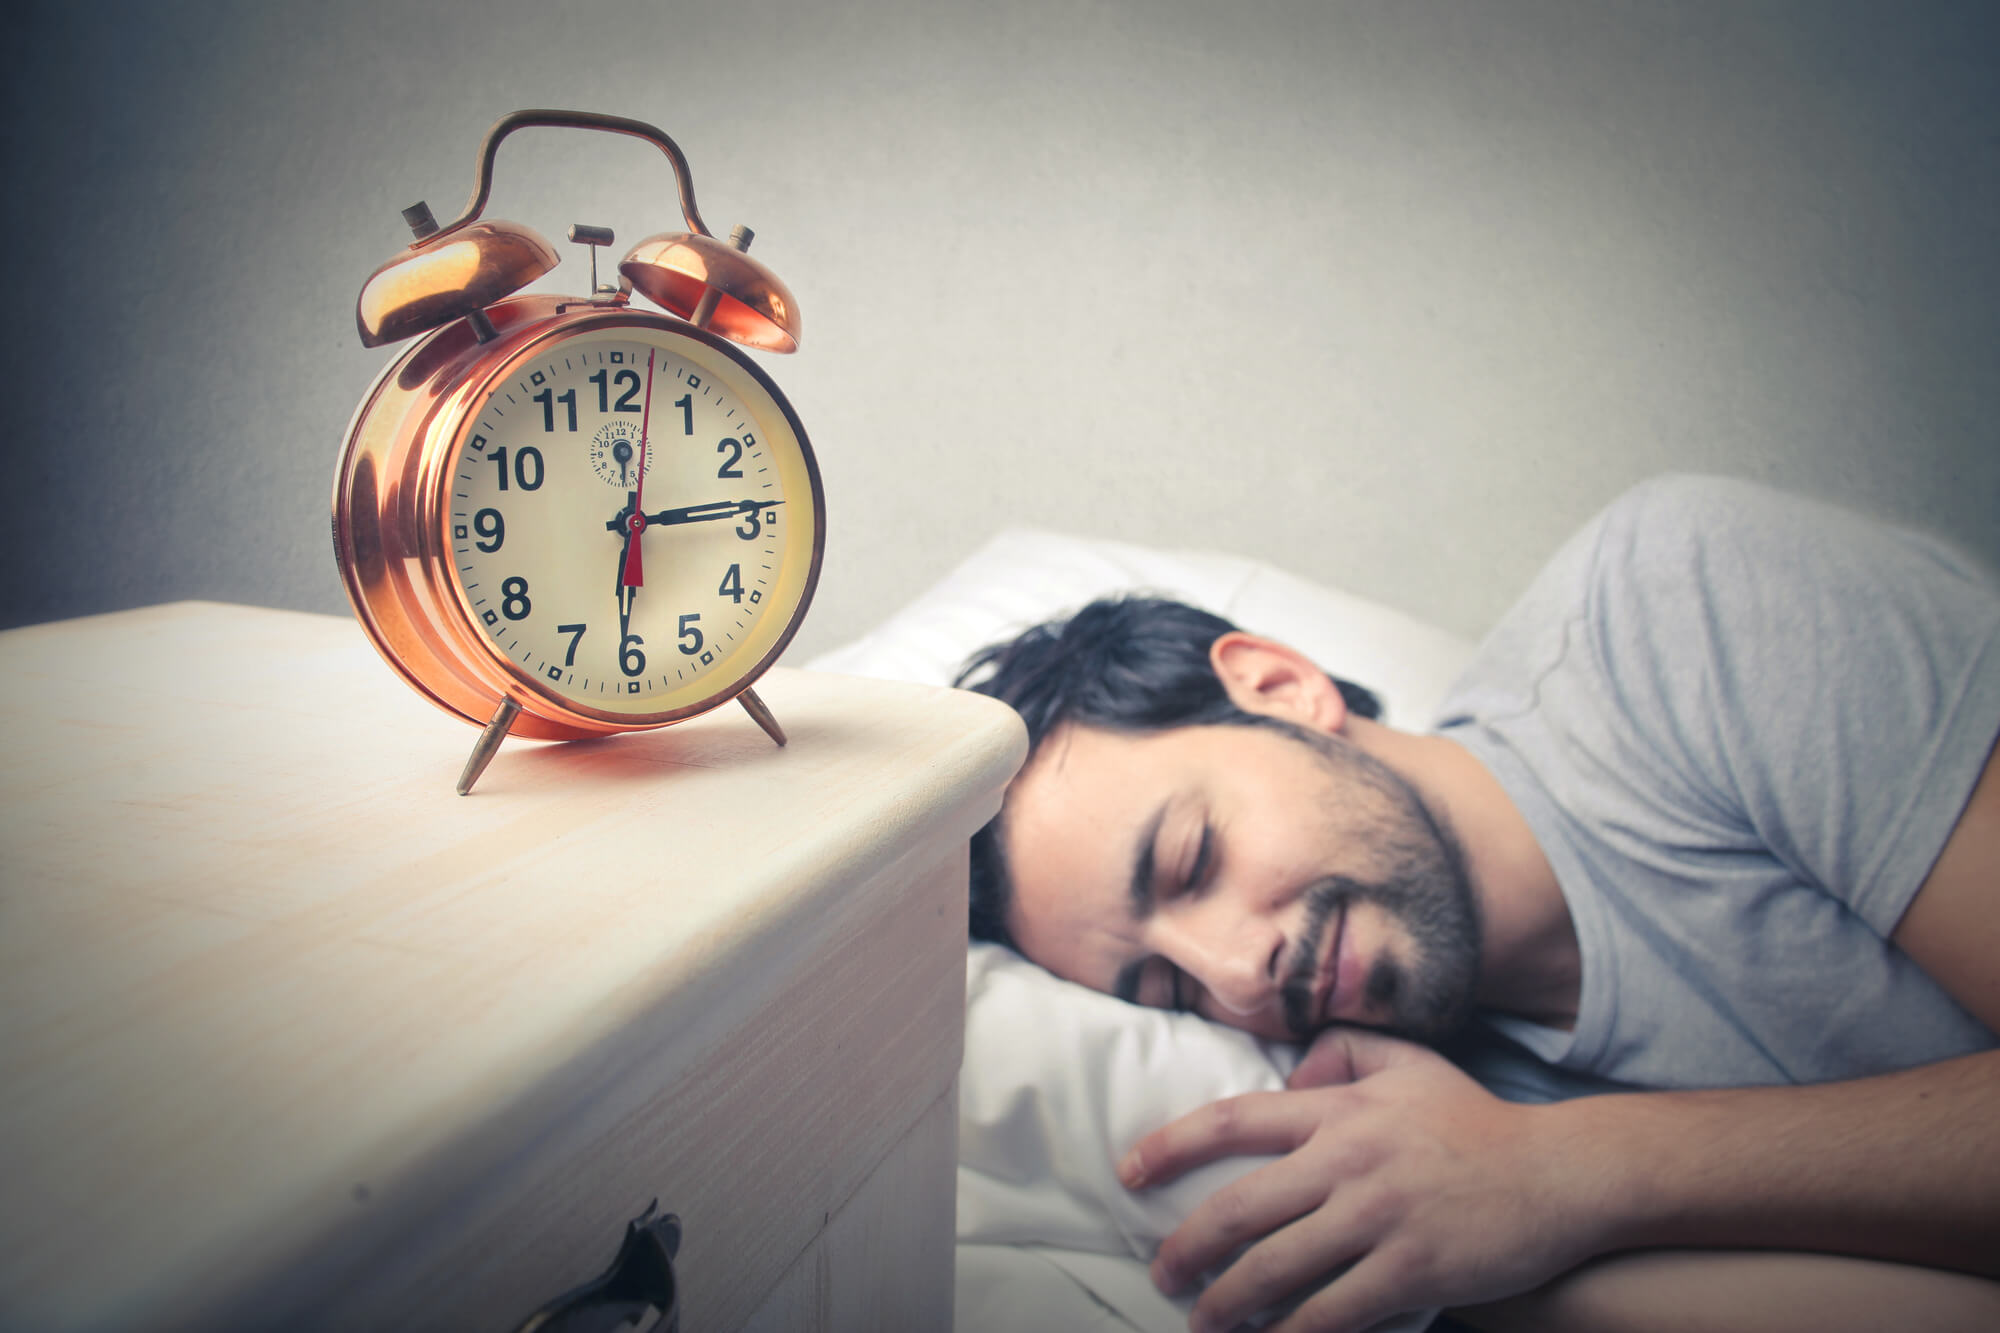 6 tips how to fall asleep fast